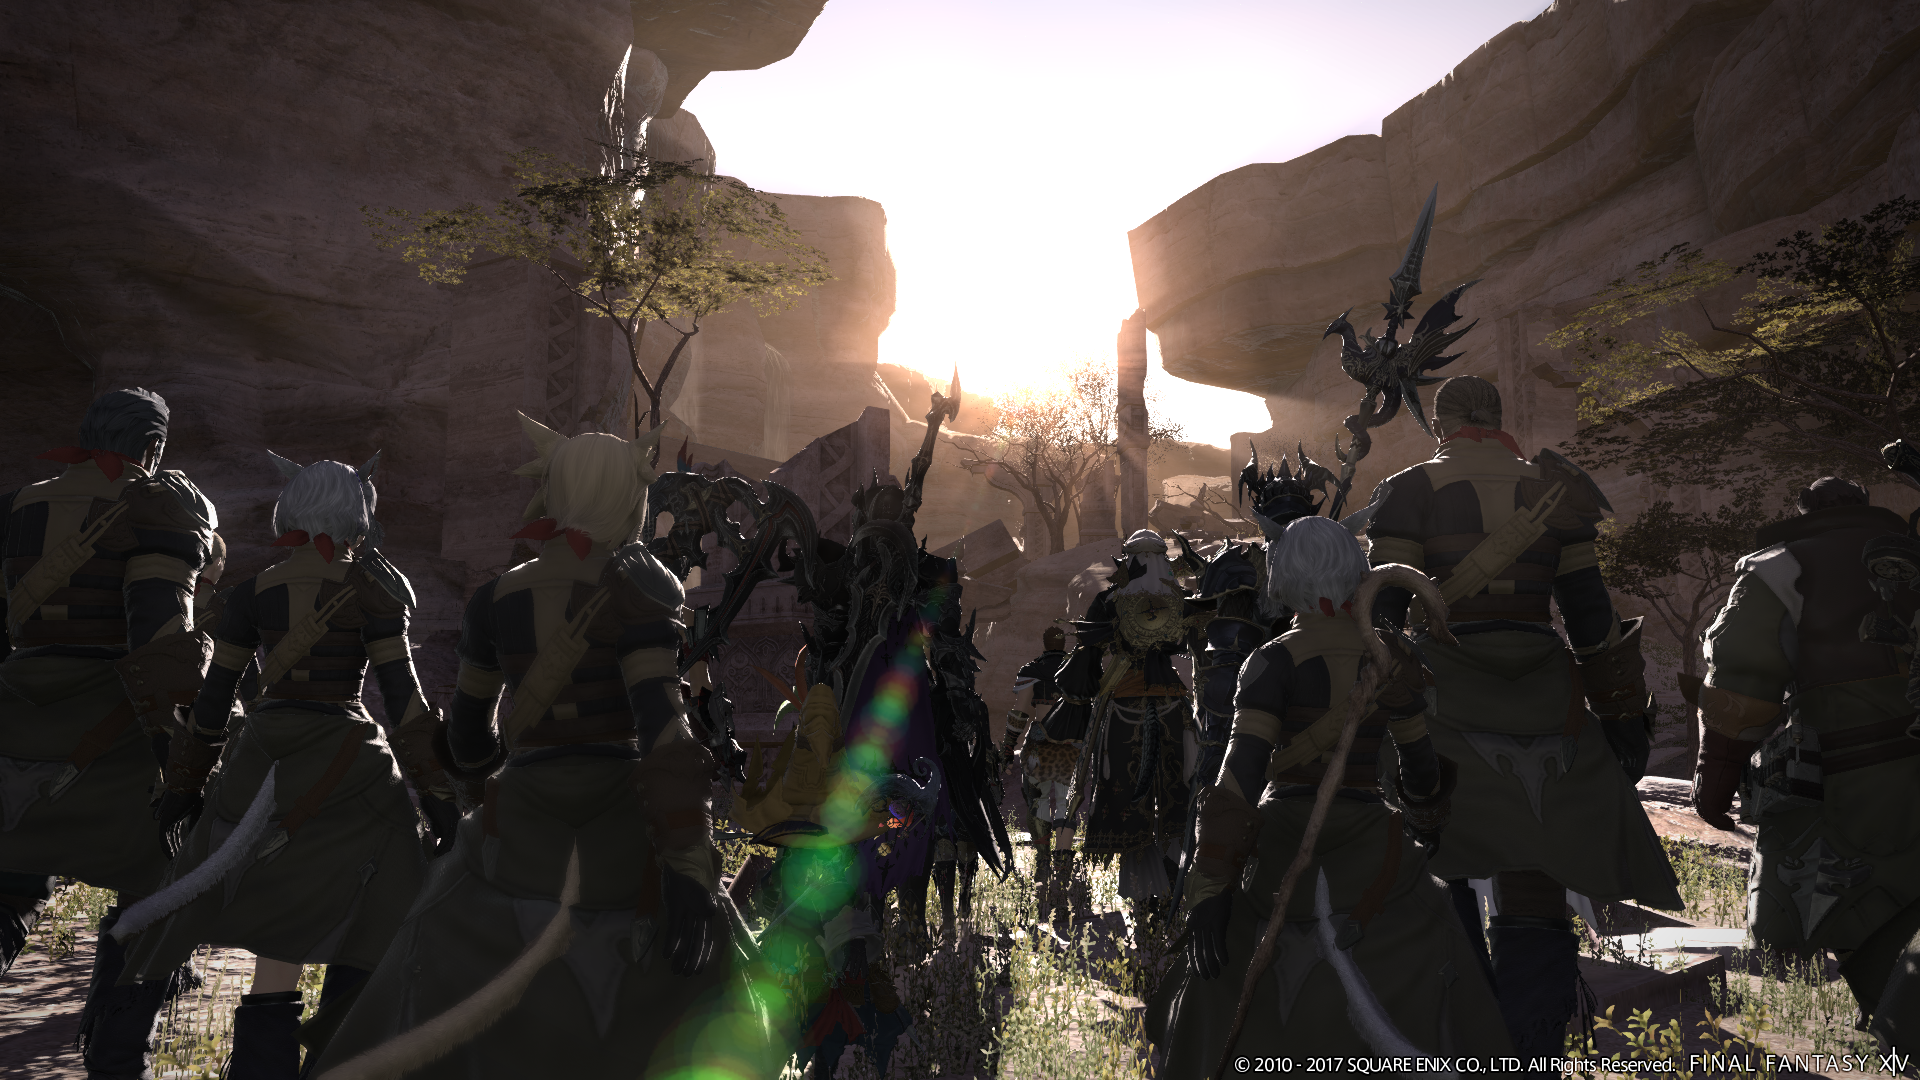 Final Fantasy XIV: Closing in on peak WoW | GamesIndustry biz